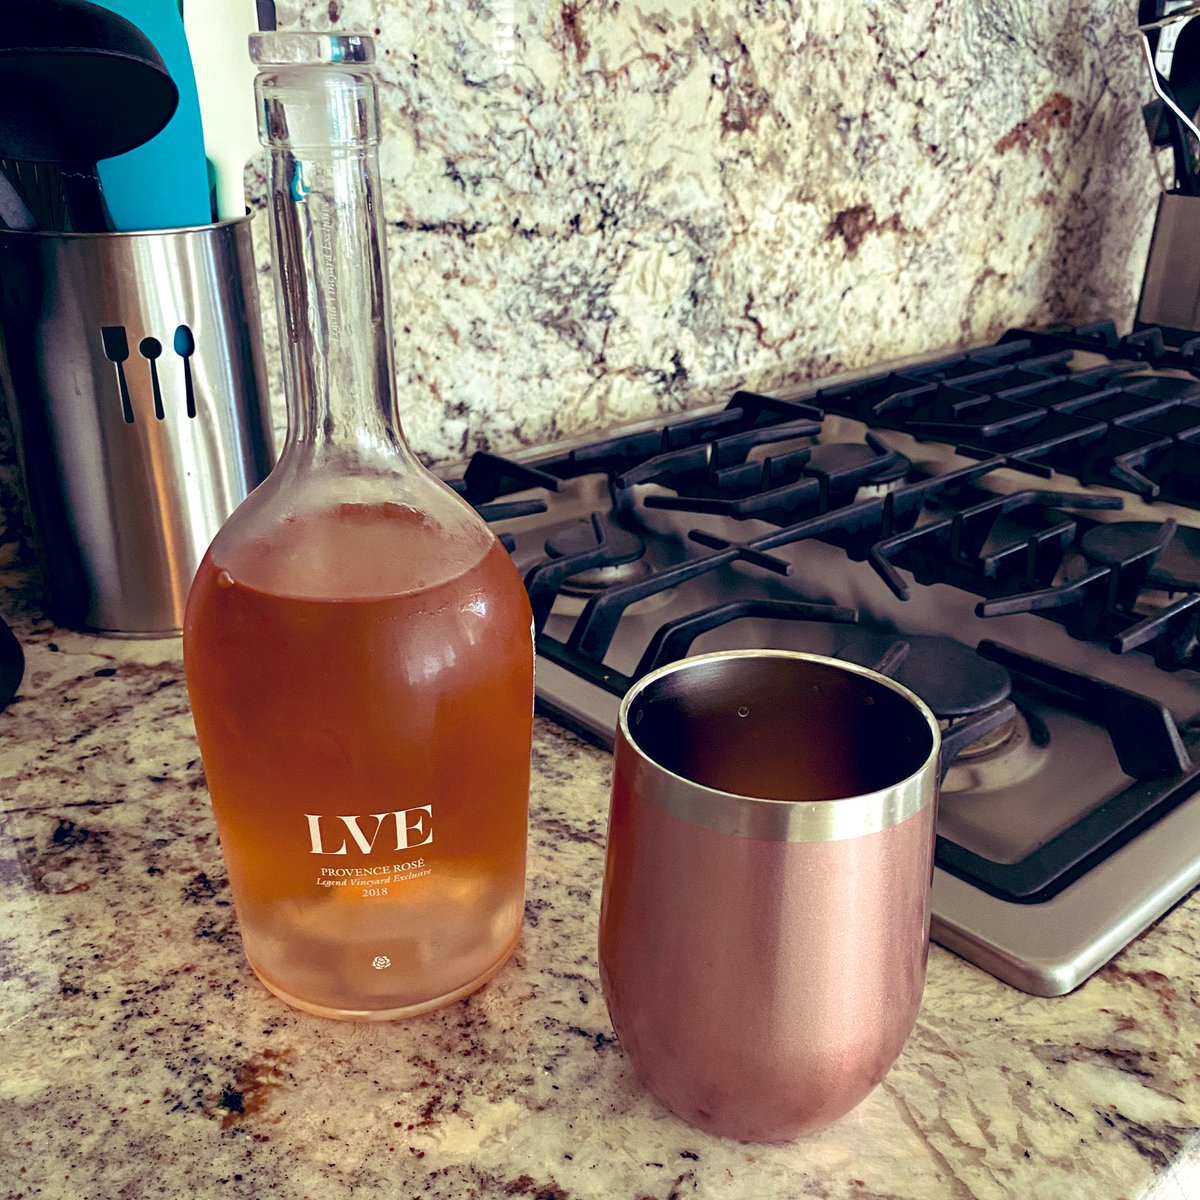 Serrated santoku knife by @cravings @chrissyteigen just came back into stock at Target - ordered and on its way - and now enjoying a glass of rosé by @LVE_wines @johnlegend ... Feeling like a successful evening!